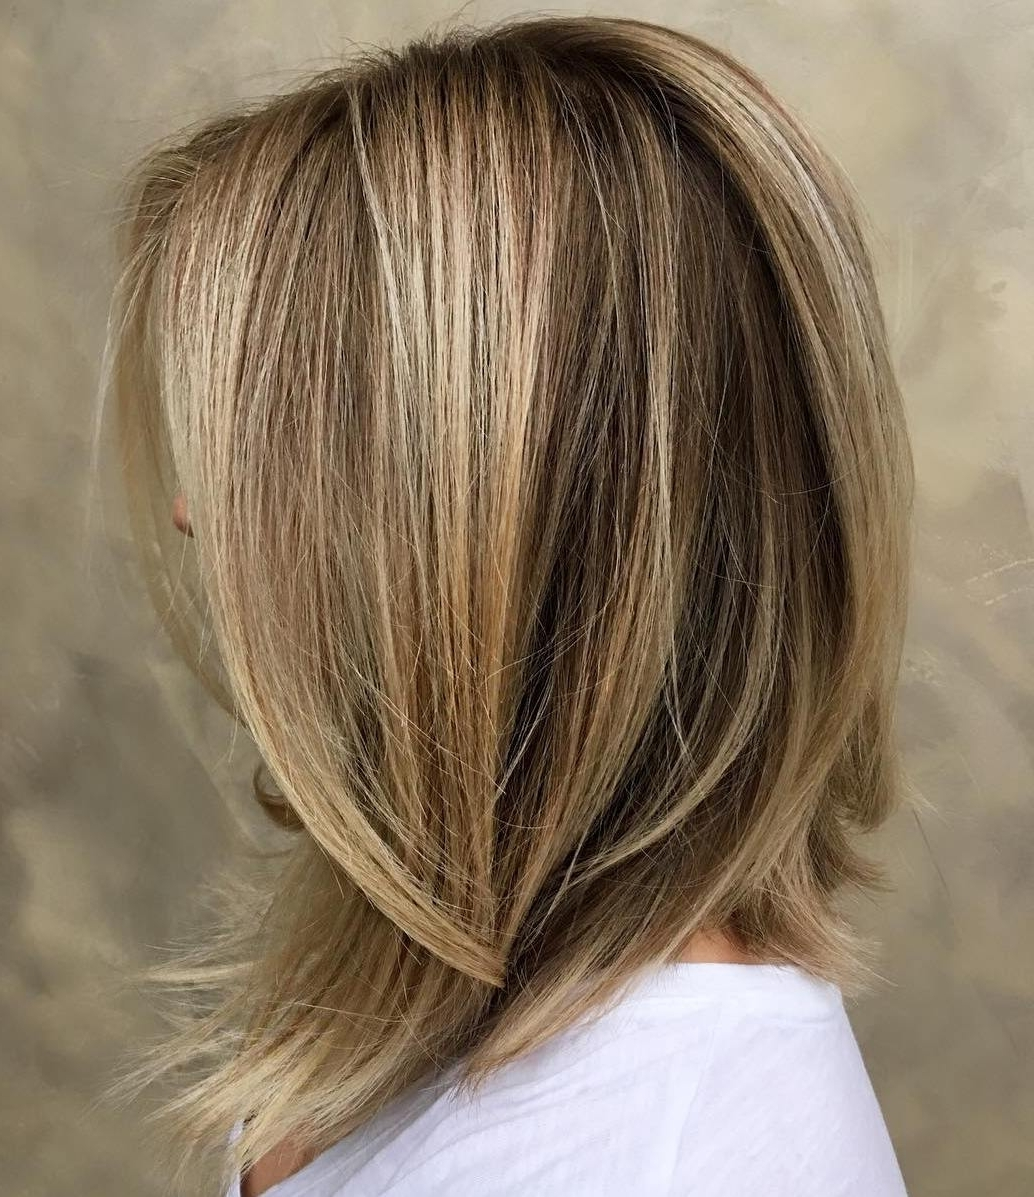 60 Inspiring Long Bob Hairstyles And Lob Haircuts 2018 With Regard To Well Known Bright Long Bob Blonde Hairstyles (View 3 of 20)